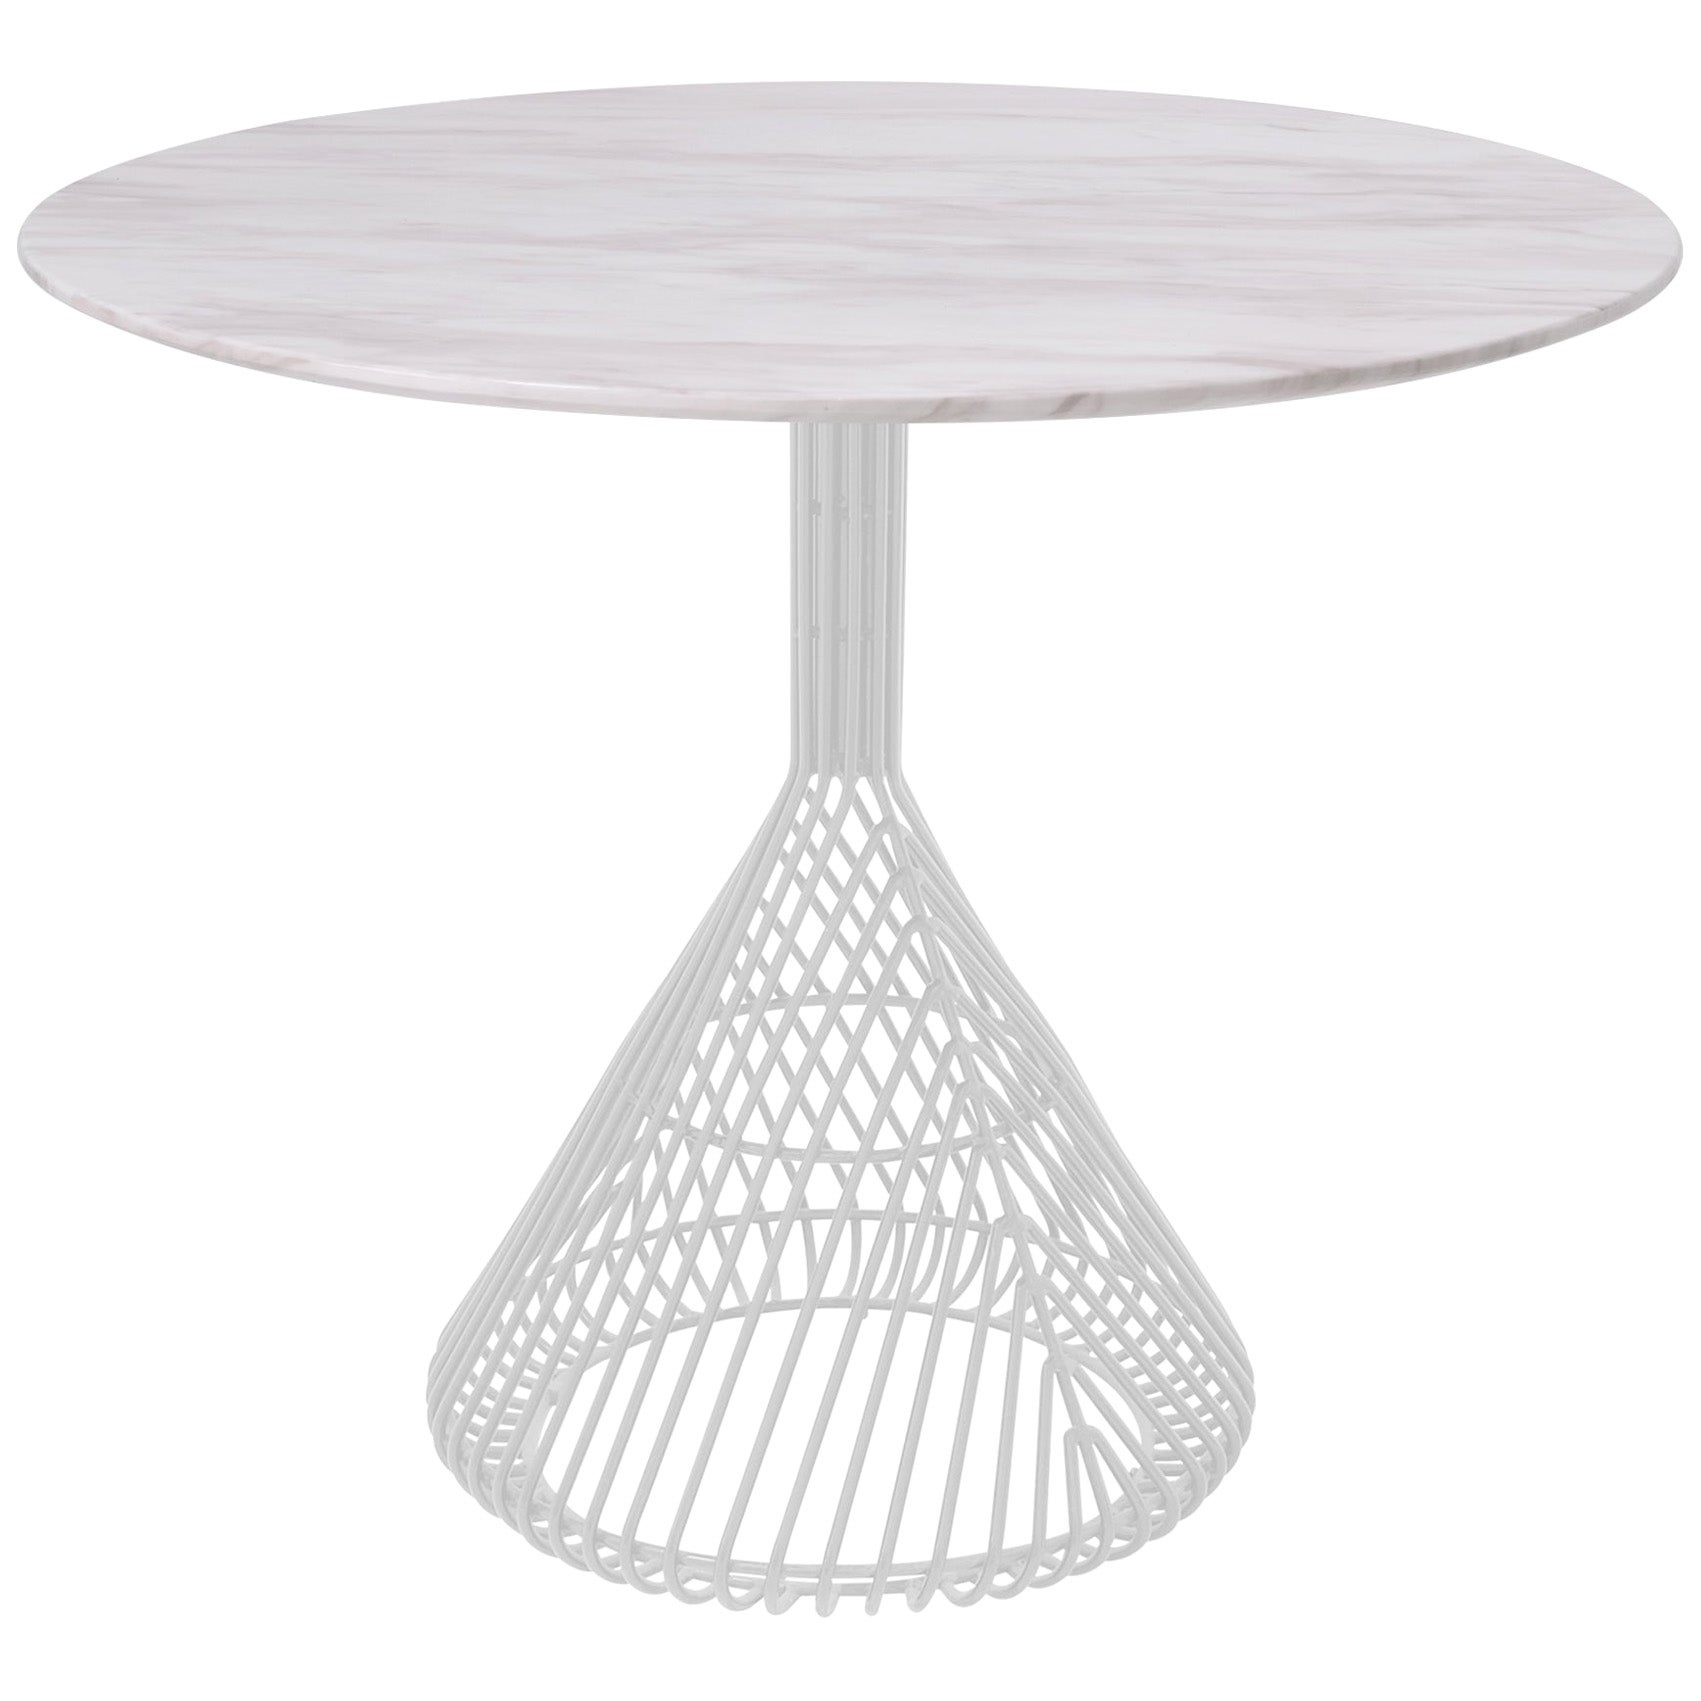 Modern Bistro Table, Wire Dining Table in White with White Marble Top